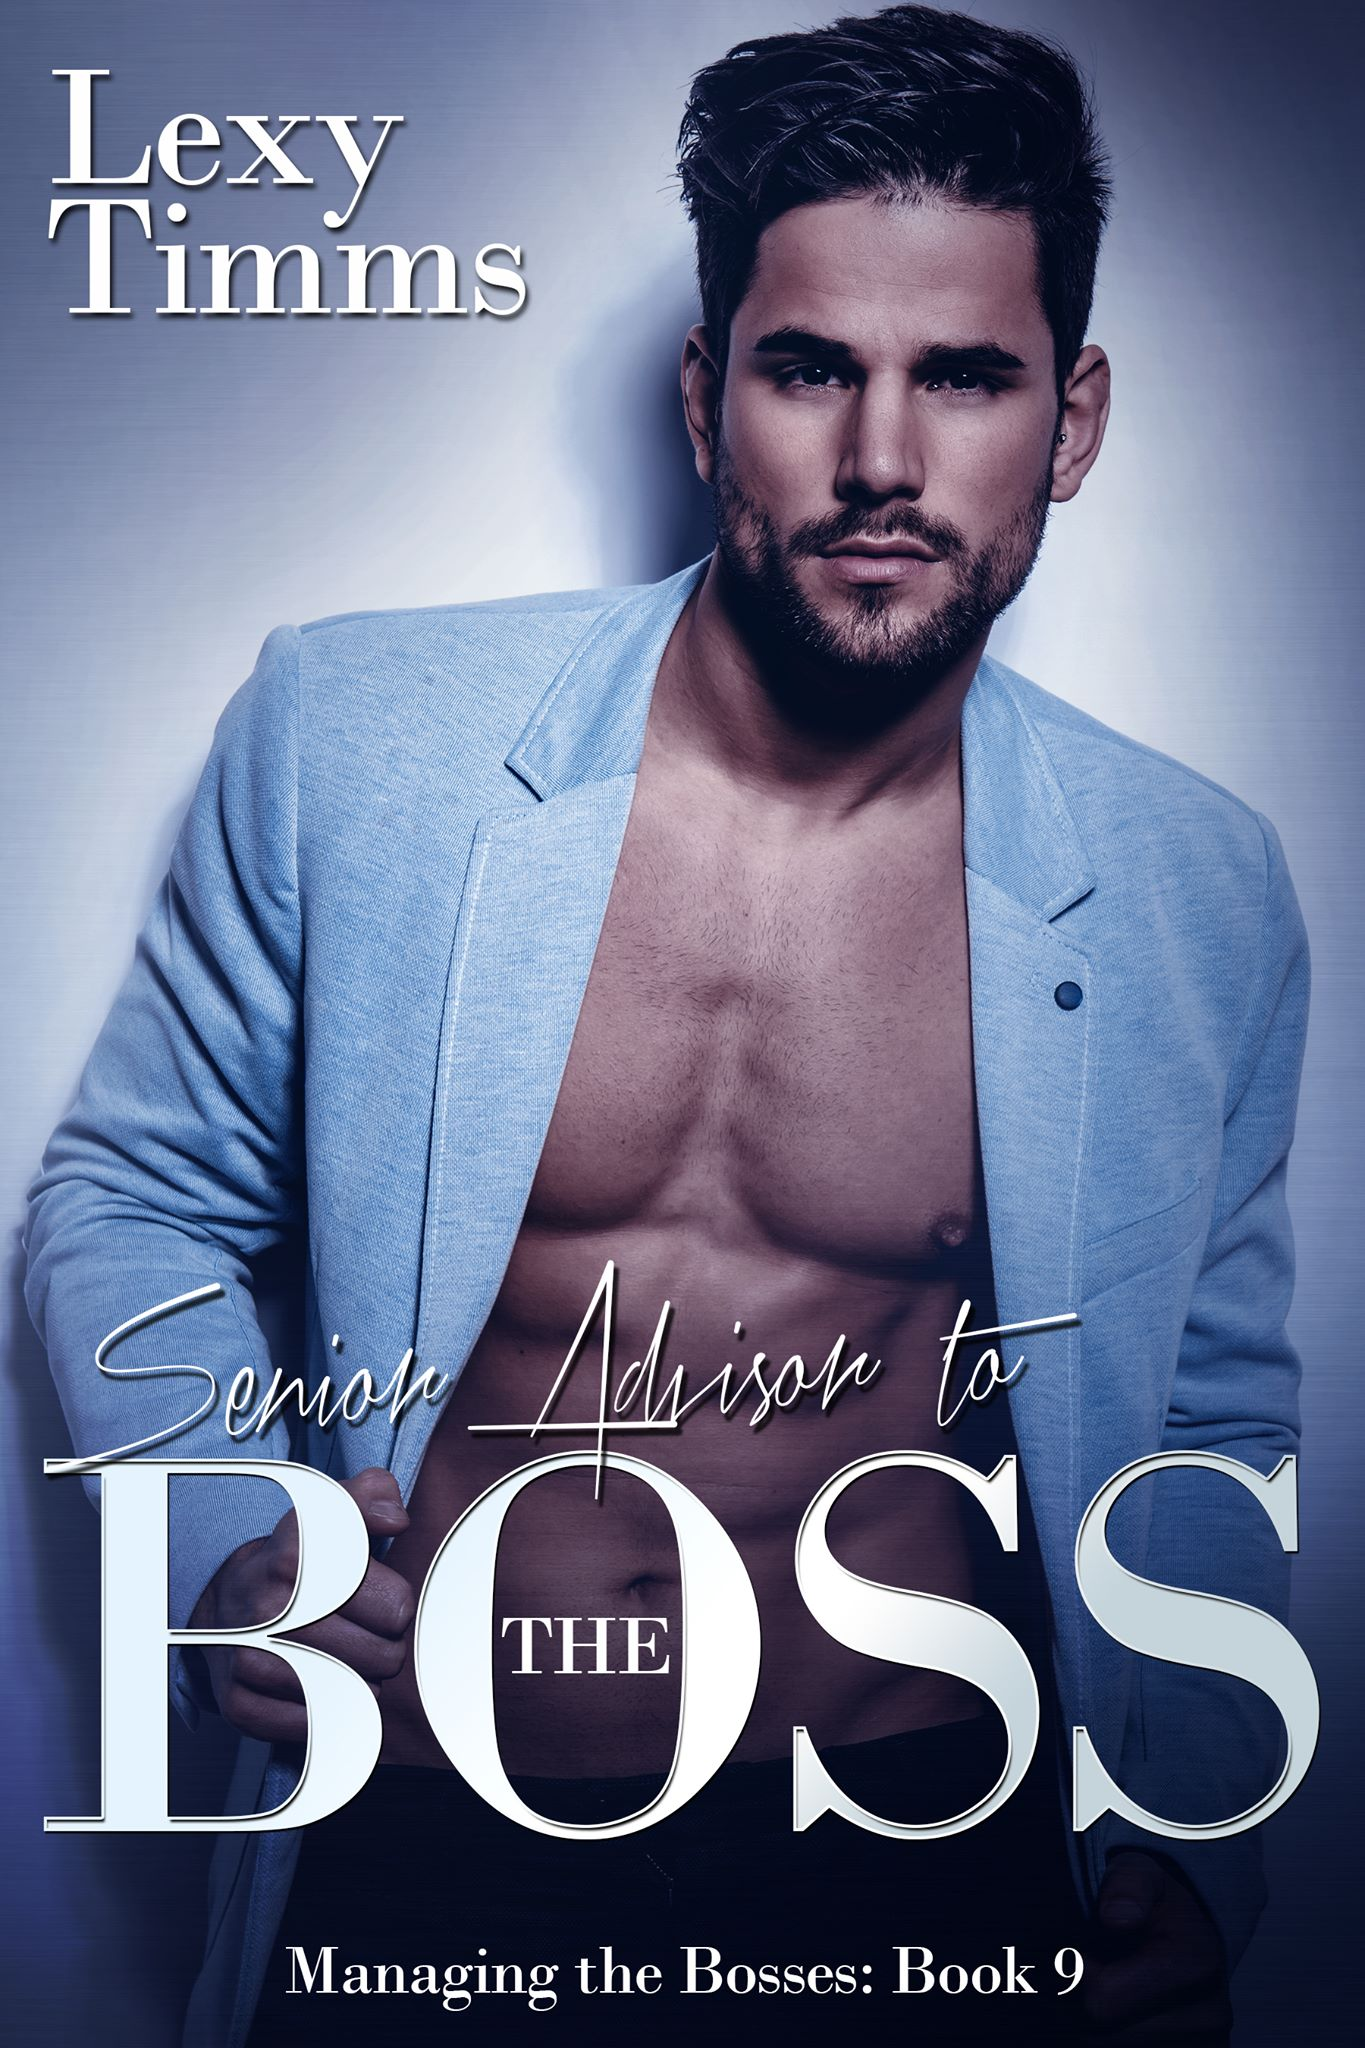 Senior advisor to the boss:  (managing the bosses series book 9)